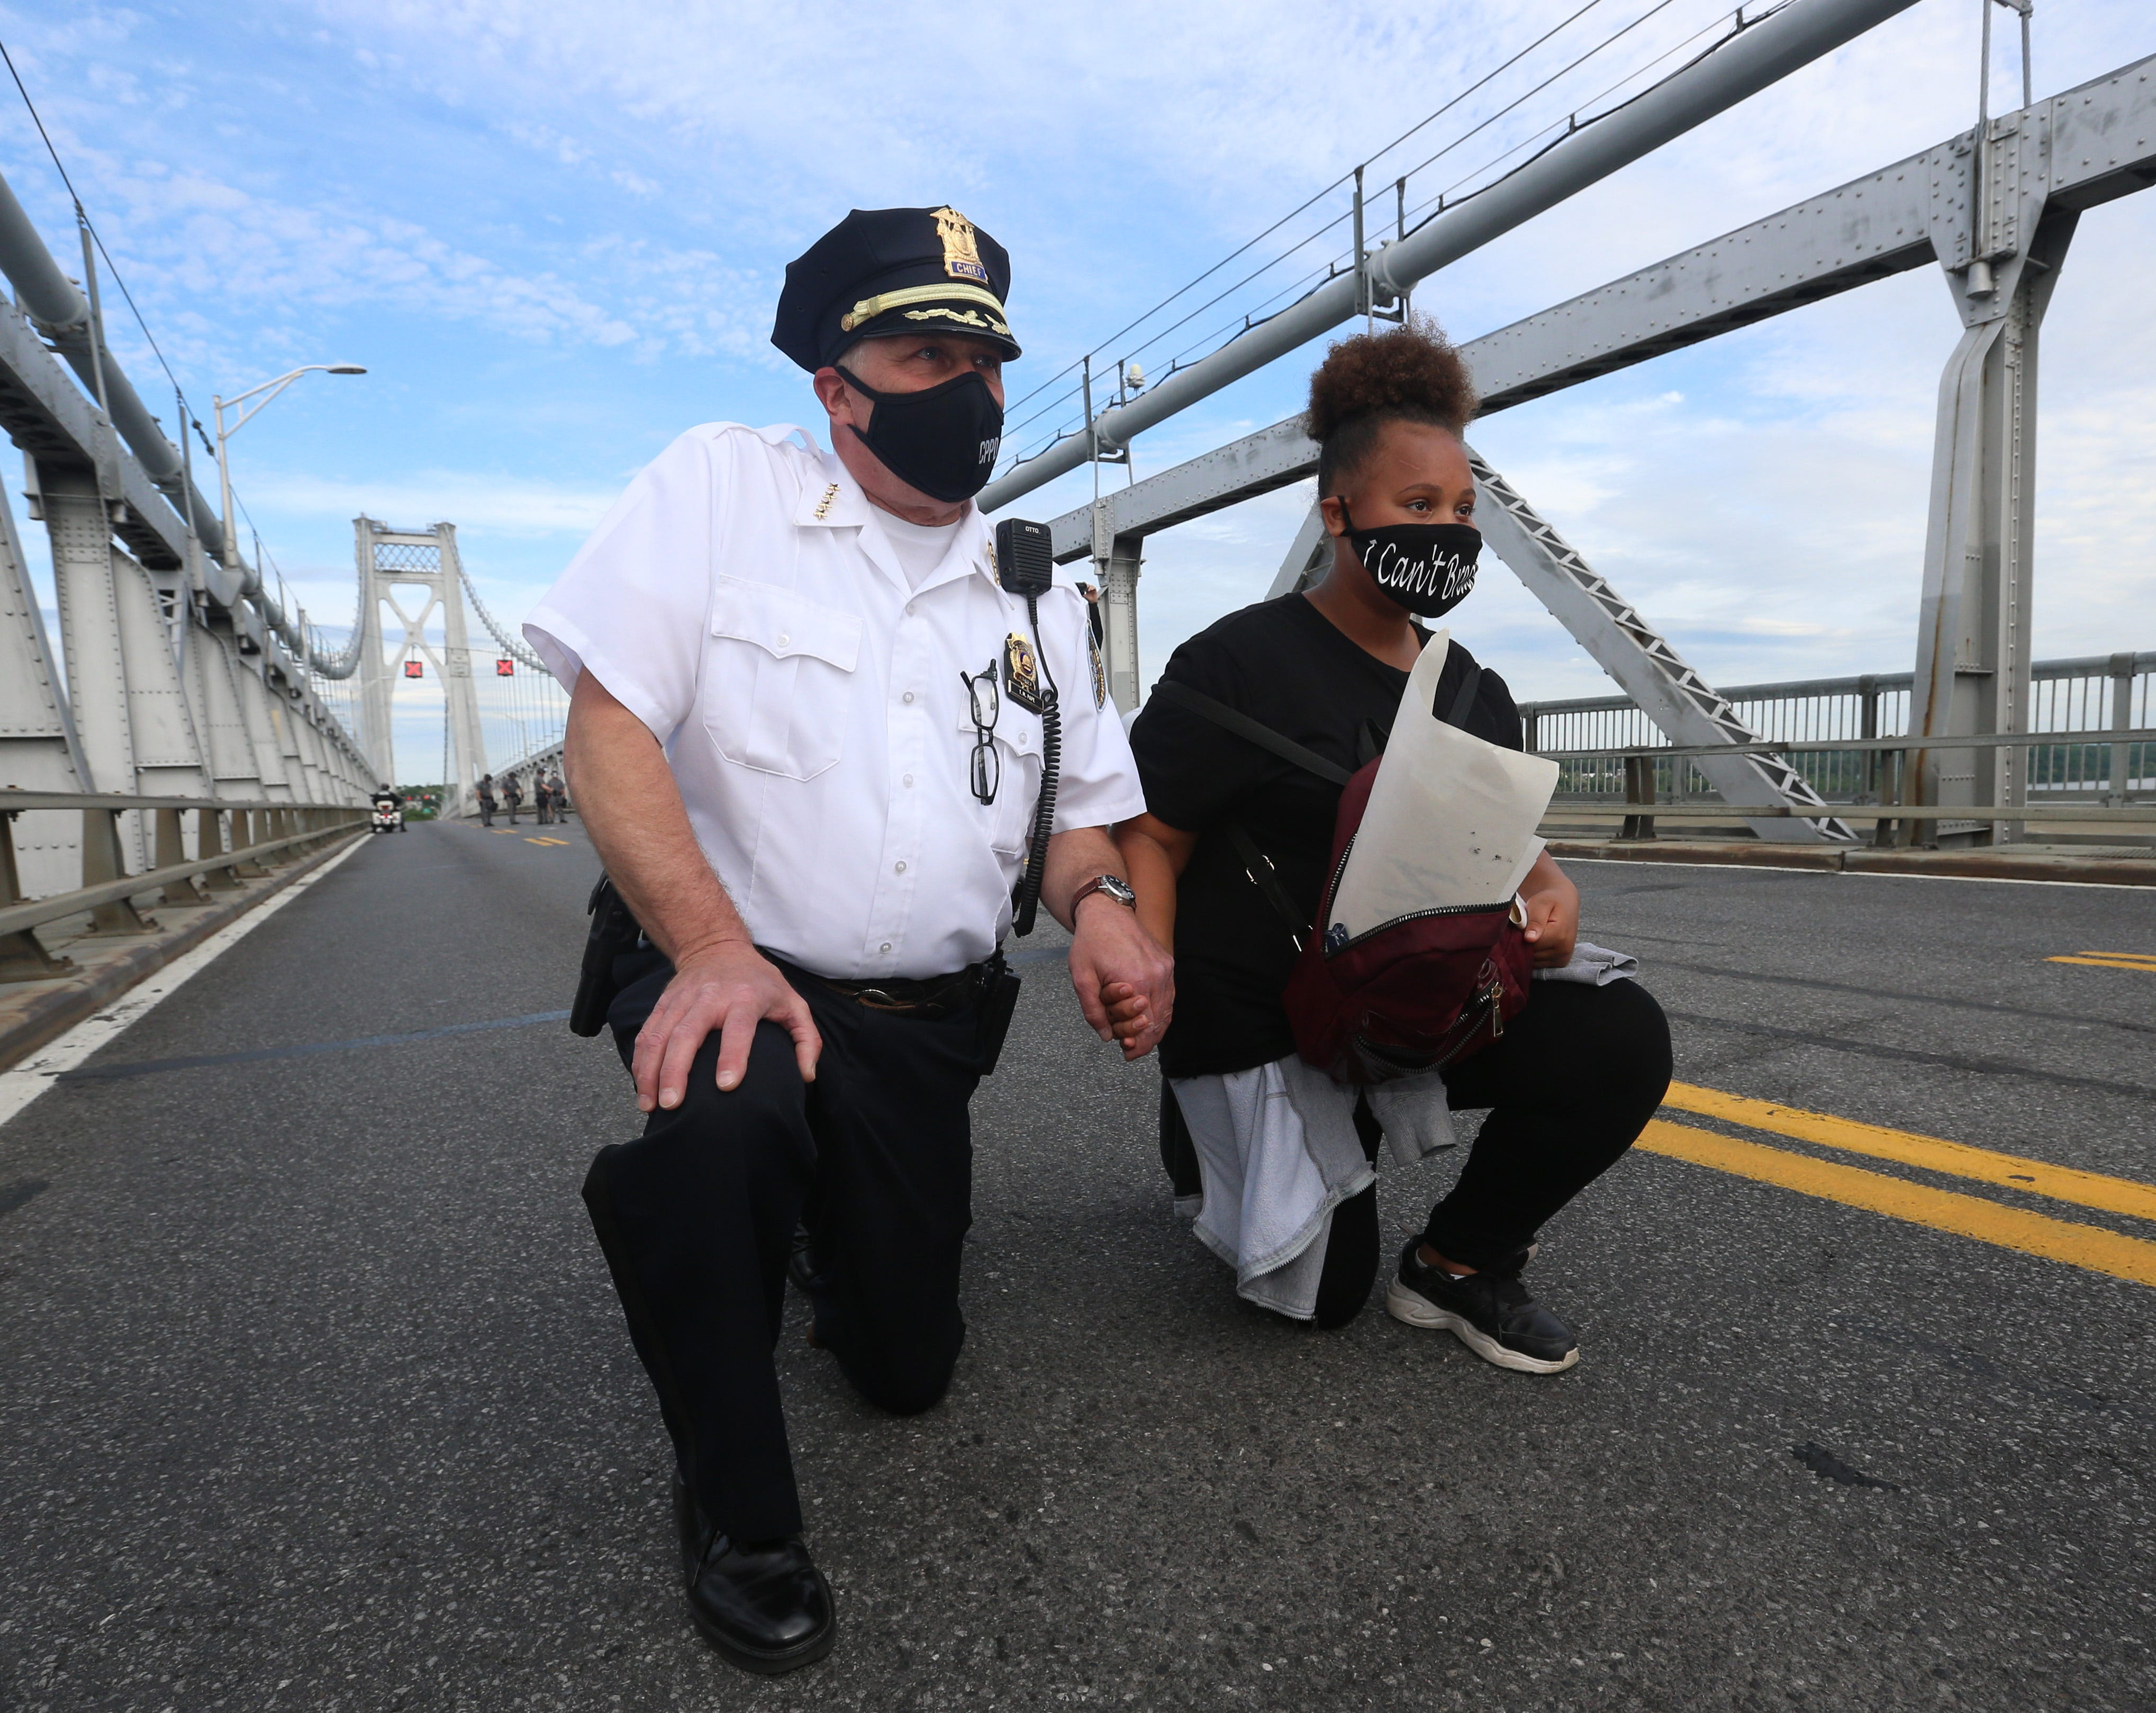 At the height of the coronavirus pandemic across the nation, New Yorkers took pause with the rest of the country to stand for racial justice. Here City of Poughkeepsie Police Chief Thomas Pape kneels with protestor Olivia Mima-Canada on the Mid-Hudson Bridge during a June protest.